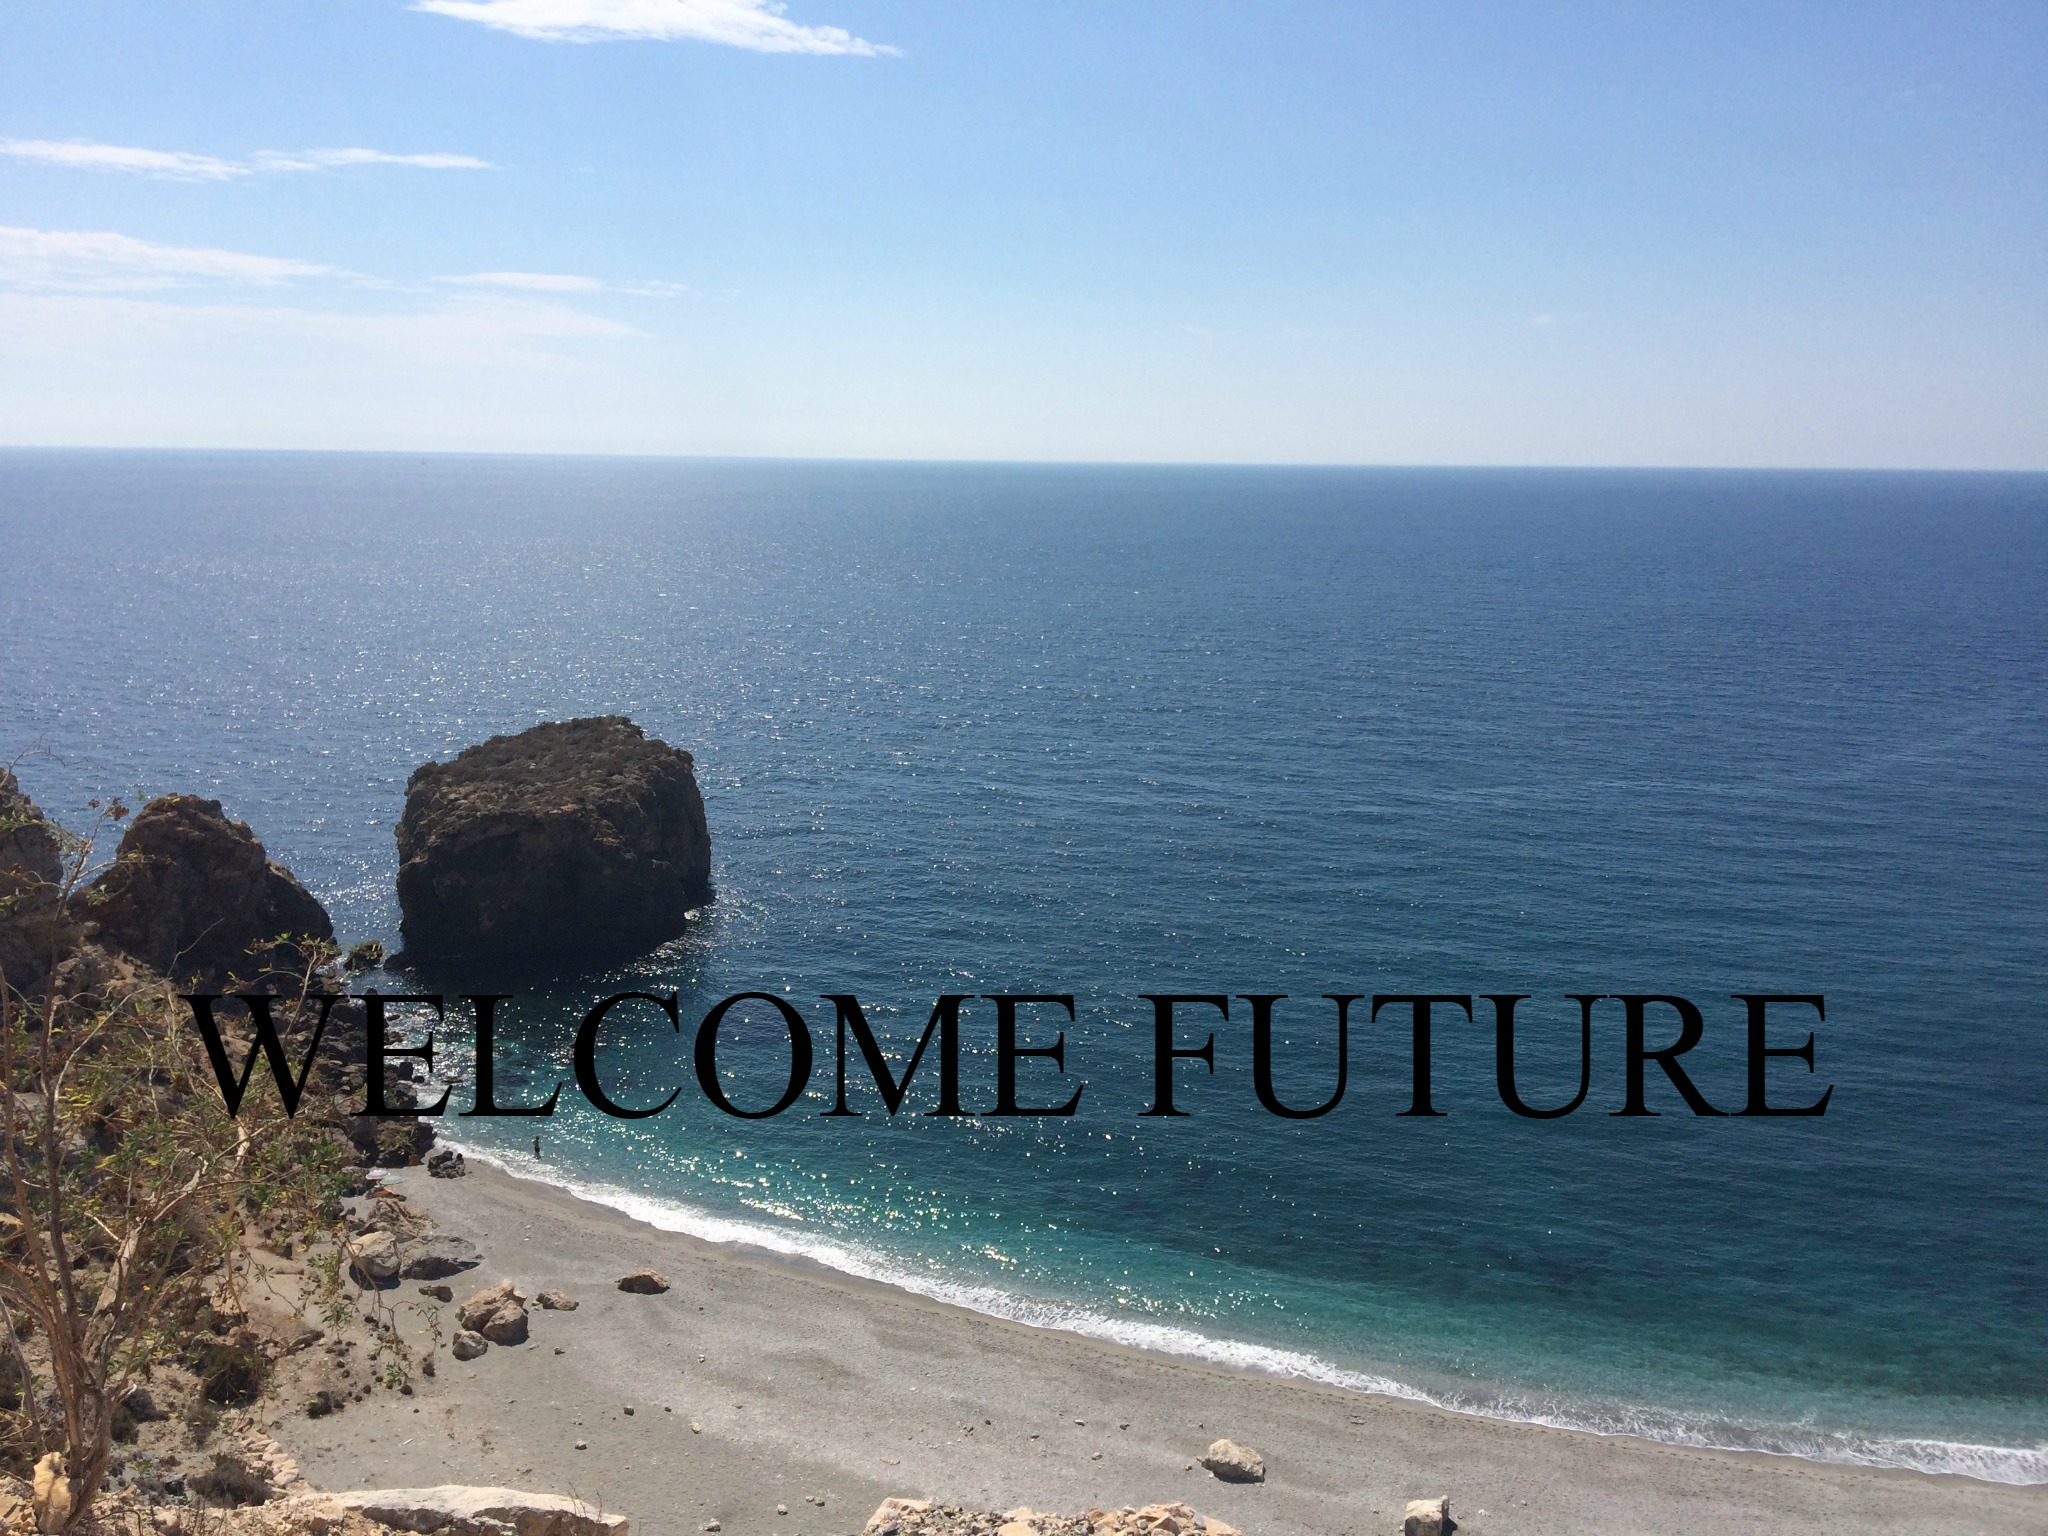 Welcome future